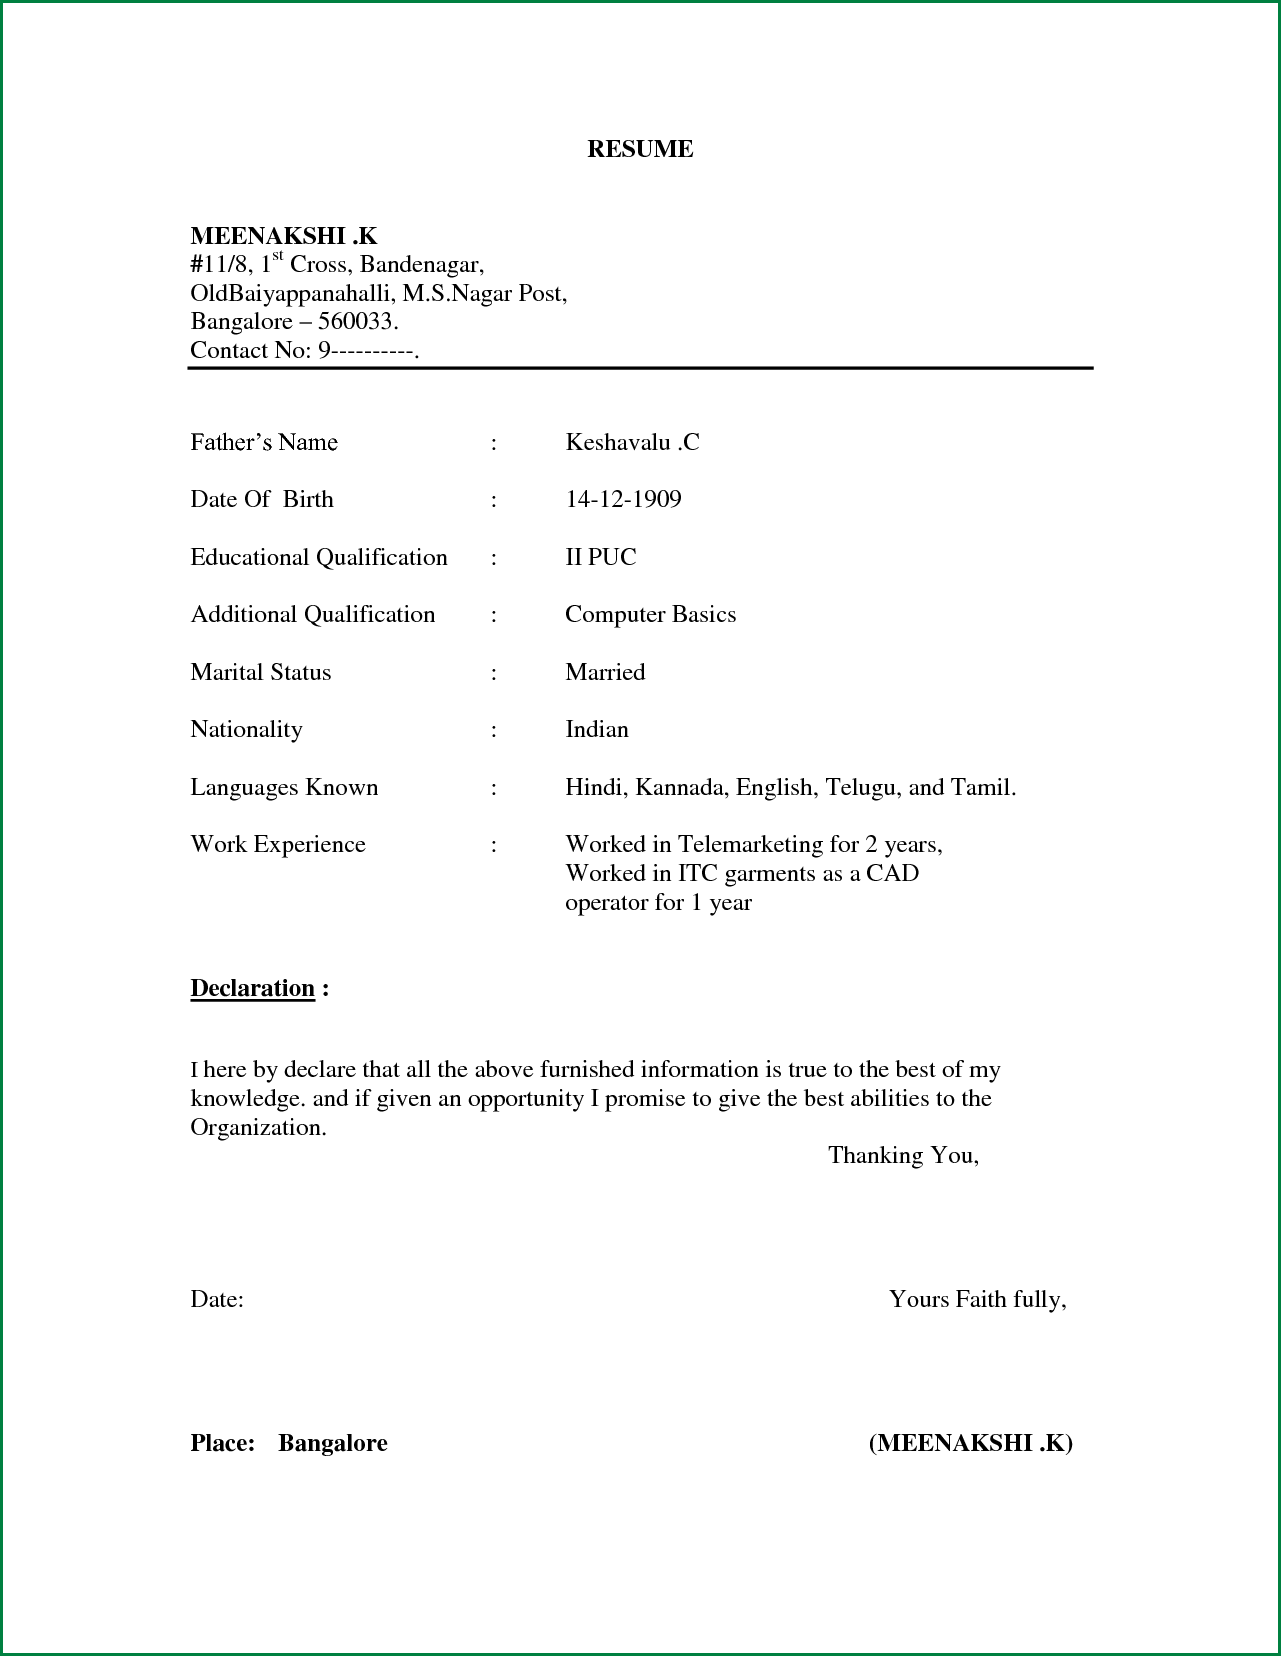 Best Resume Sample Endearing Simple Resume Format For Freshers In Word File137085913